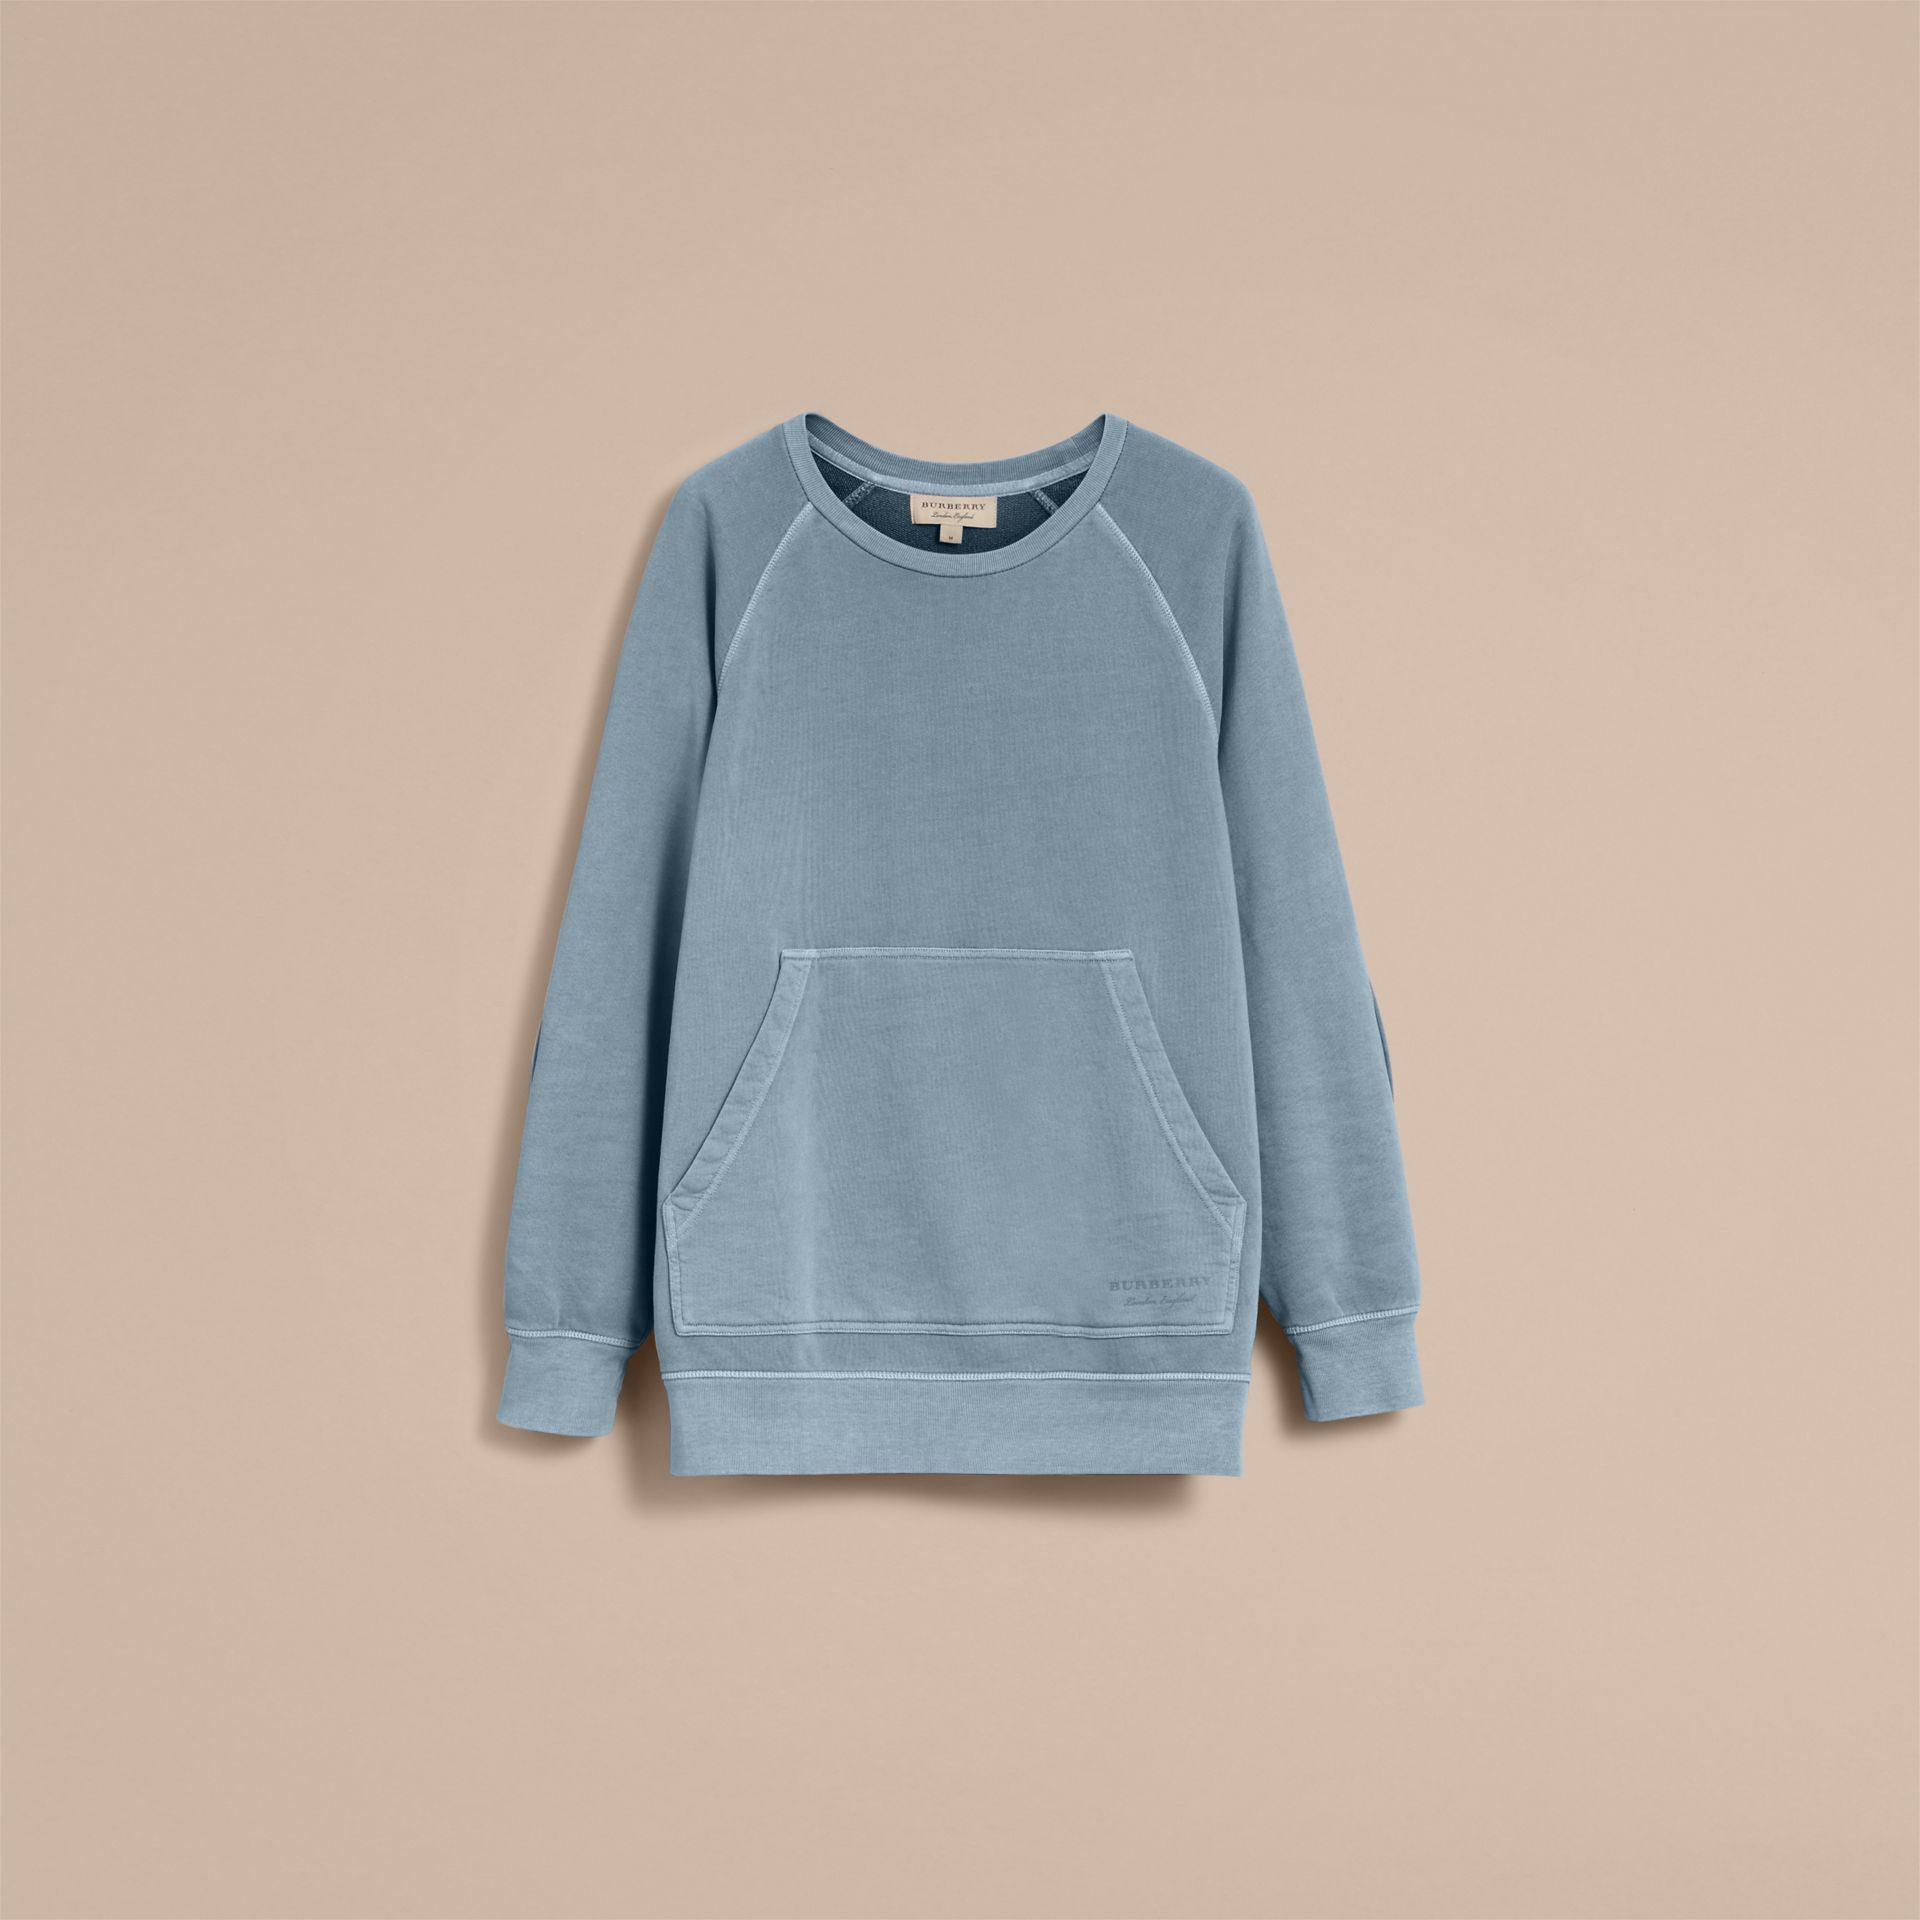 Unisex Pigment-dyed Cotton Oversize Sweatshirt in Dusty Blue - Men | Burberry Hong Kong - gallery image 4